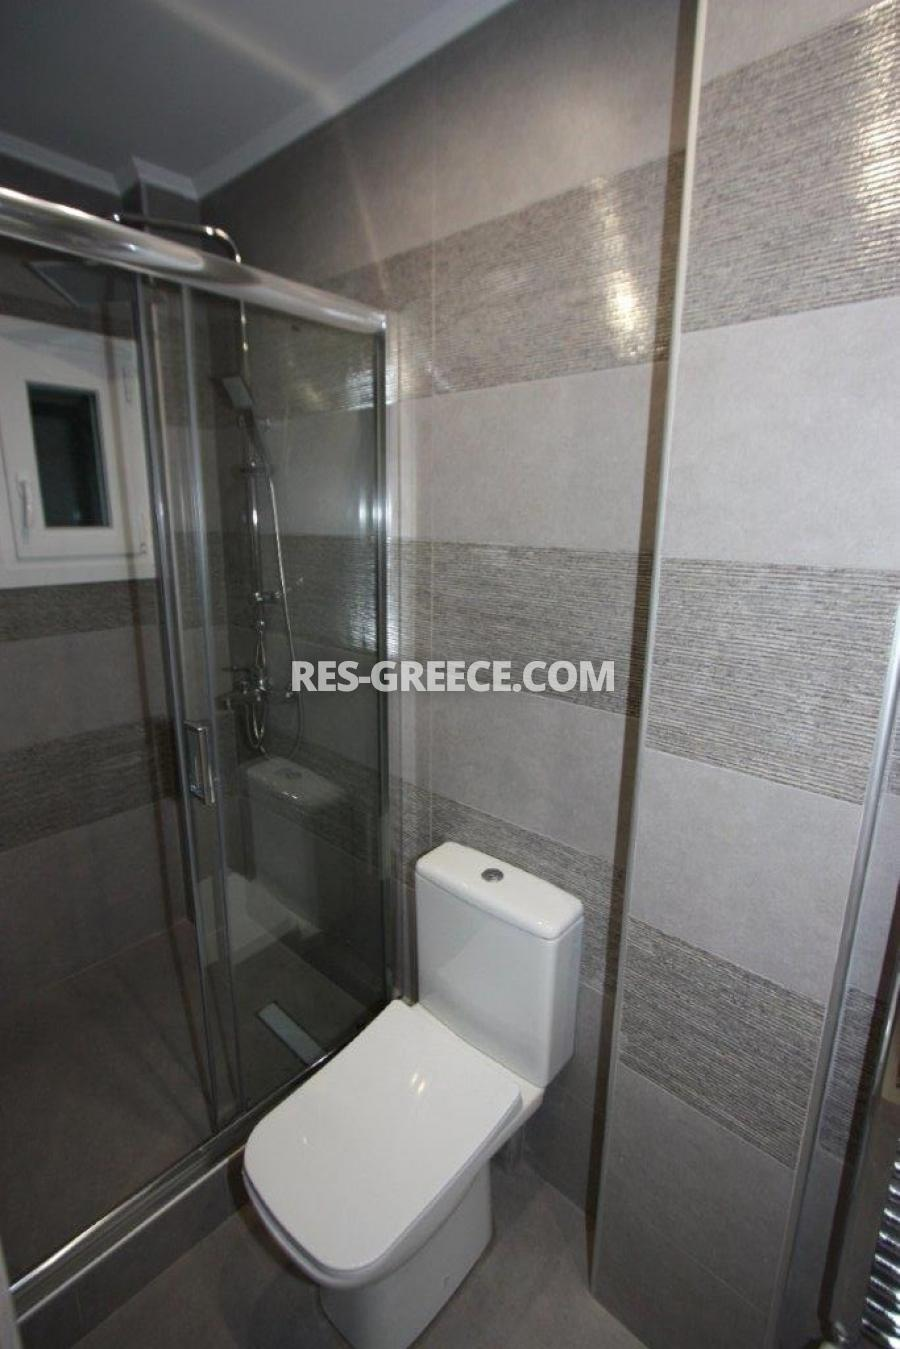 Poli 21, Central Macedonia, Greece - Apartment for residence or for long term rent - Photo 14